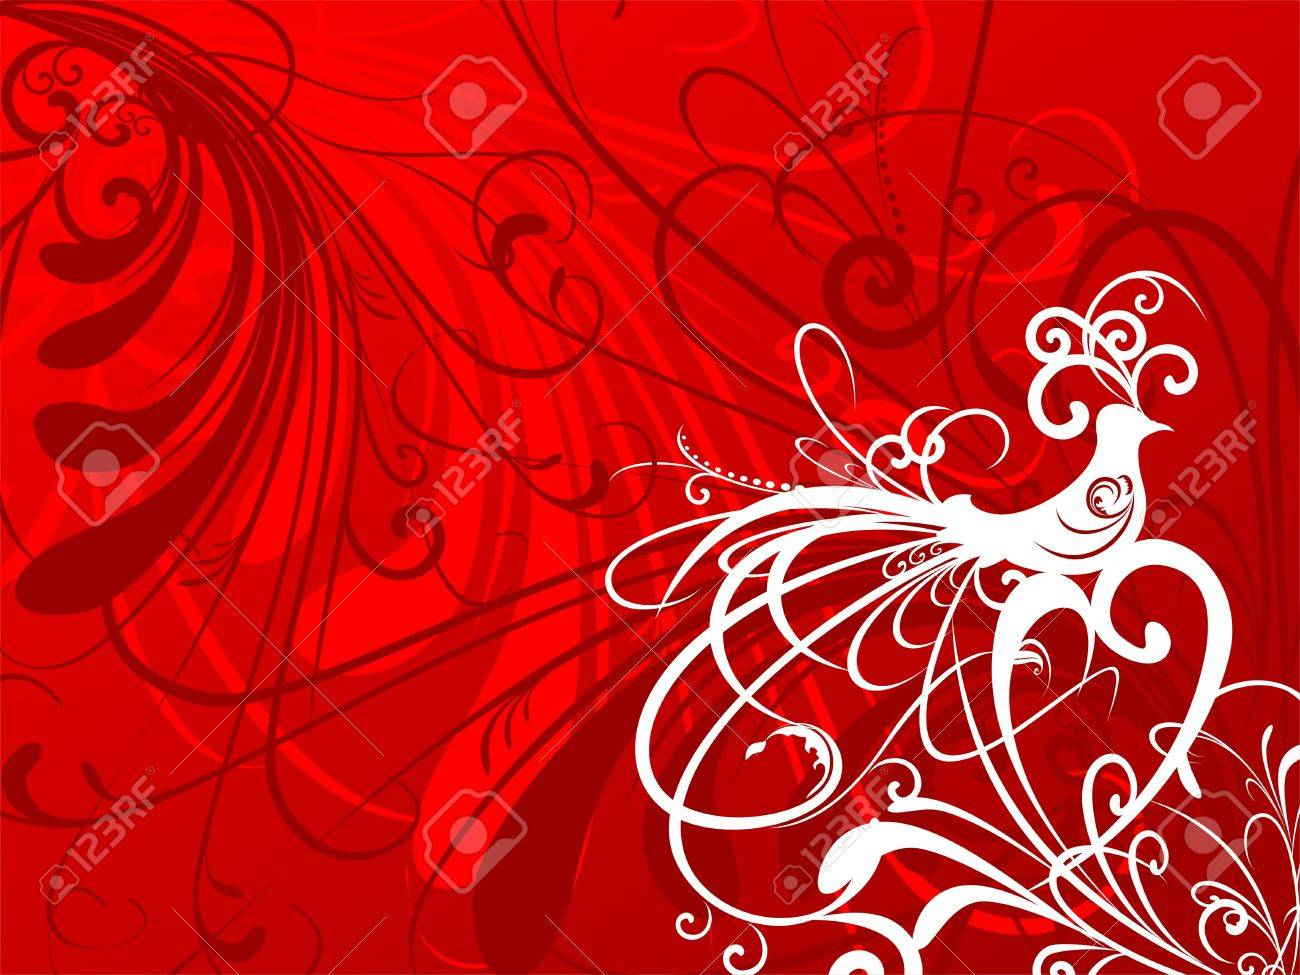 Red floral background - 10748471